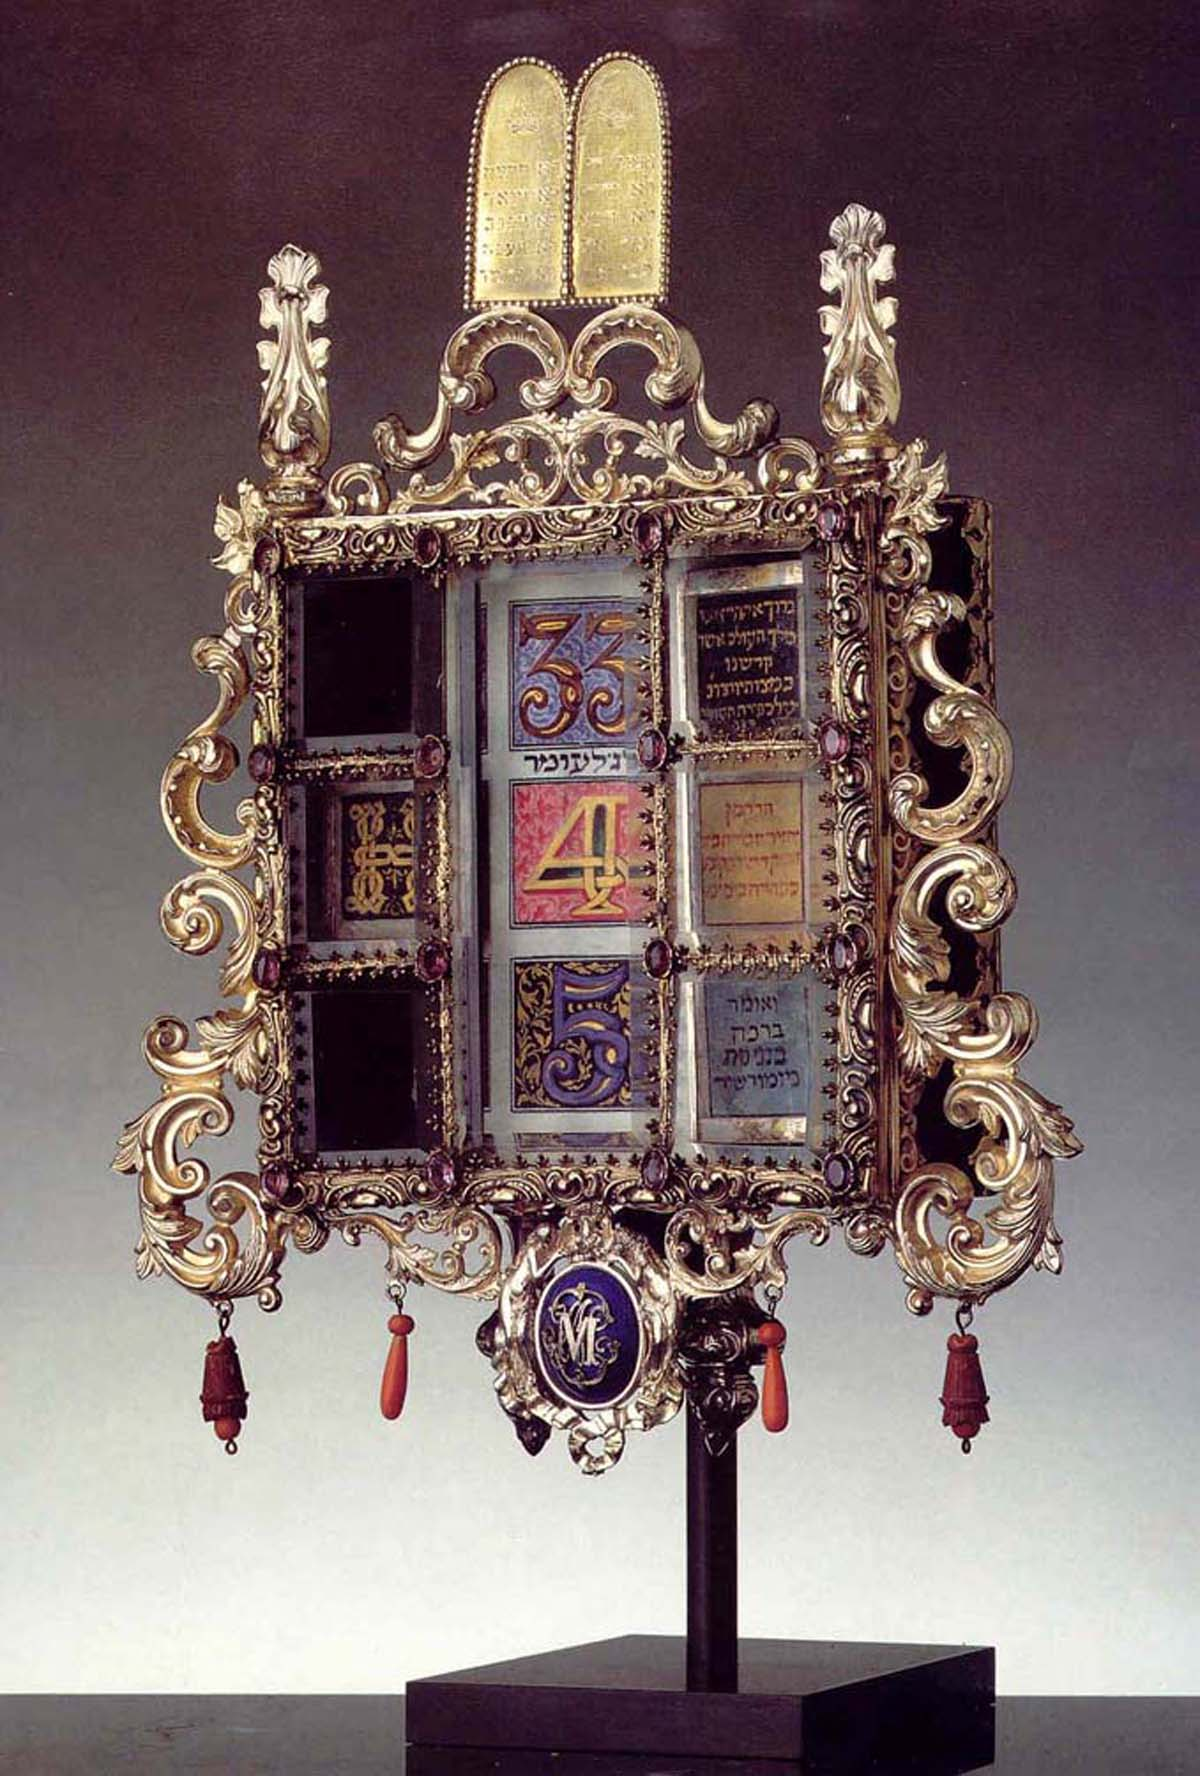 Omer Calendar (1870) Wood, silver, gilt, enamel, glass, coral, parchment by Maurice Mayer; Hebrew Union College, Skirball Museum, Los Angeles